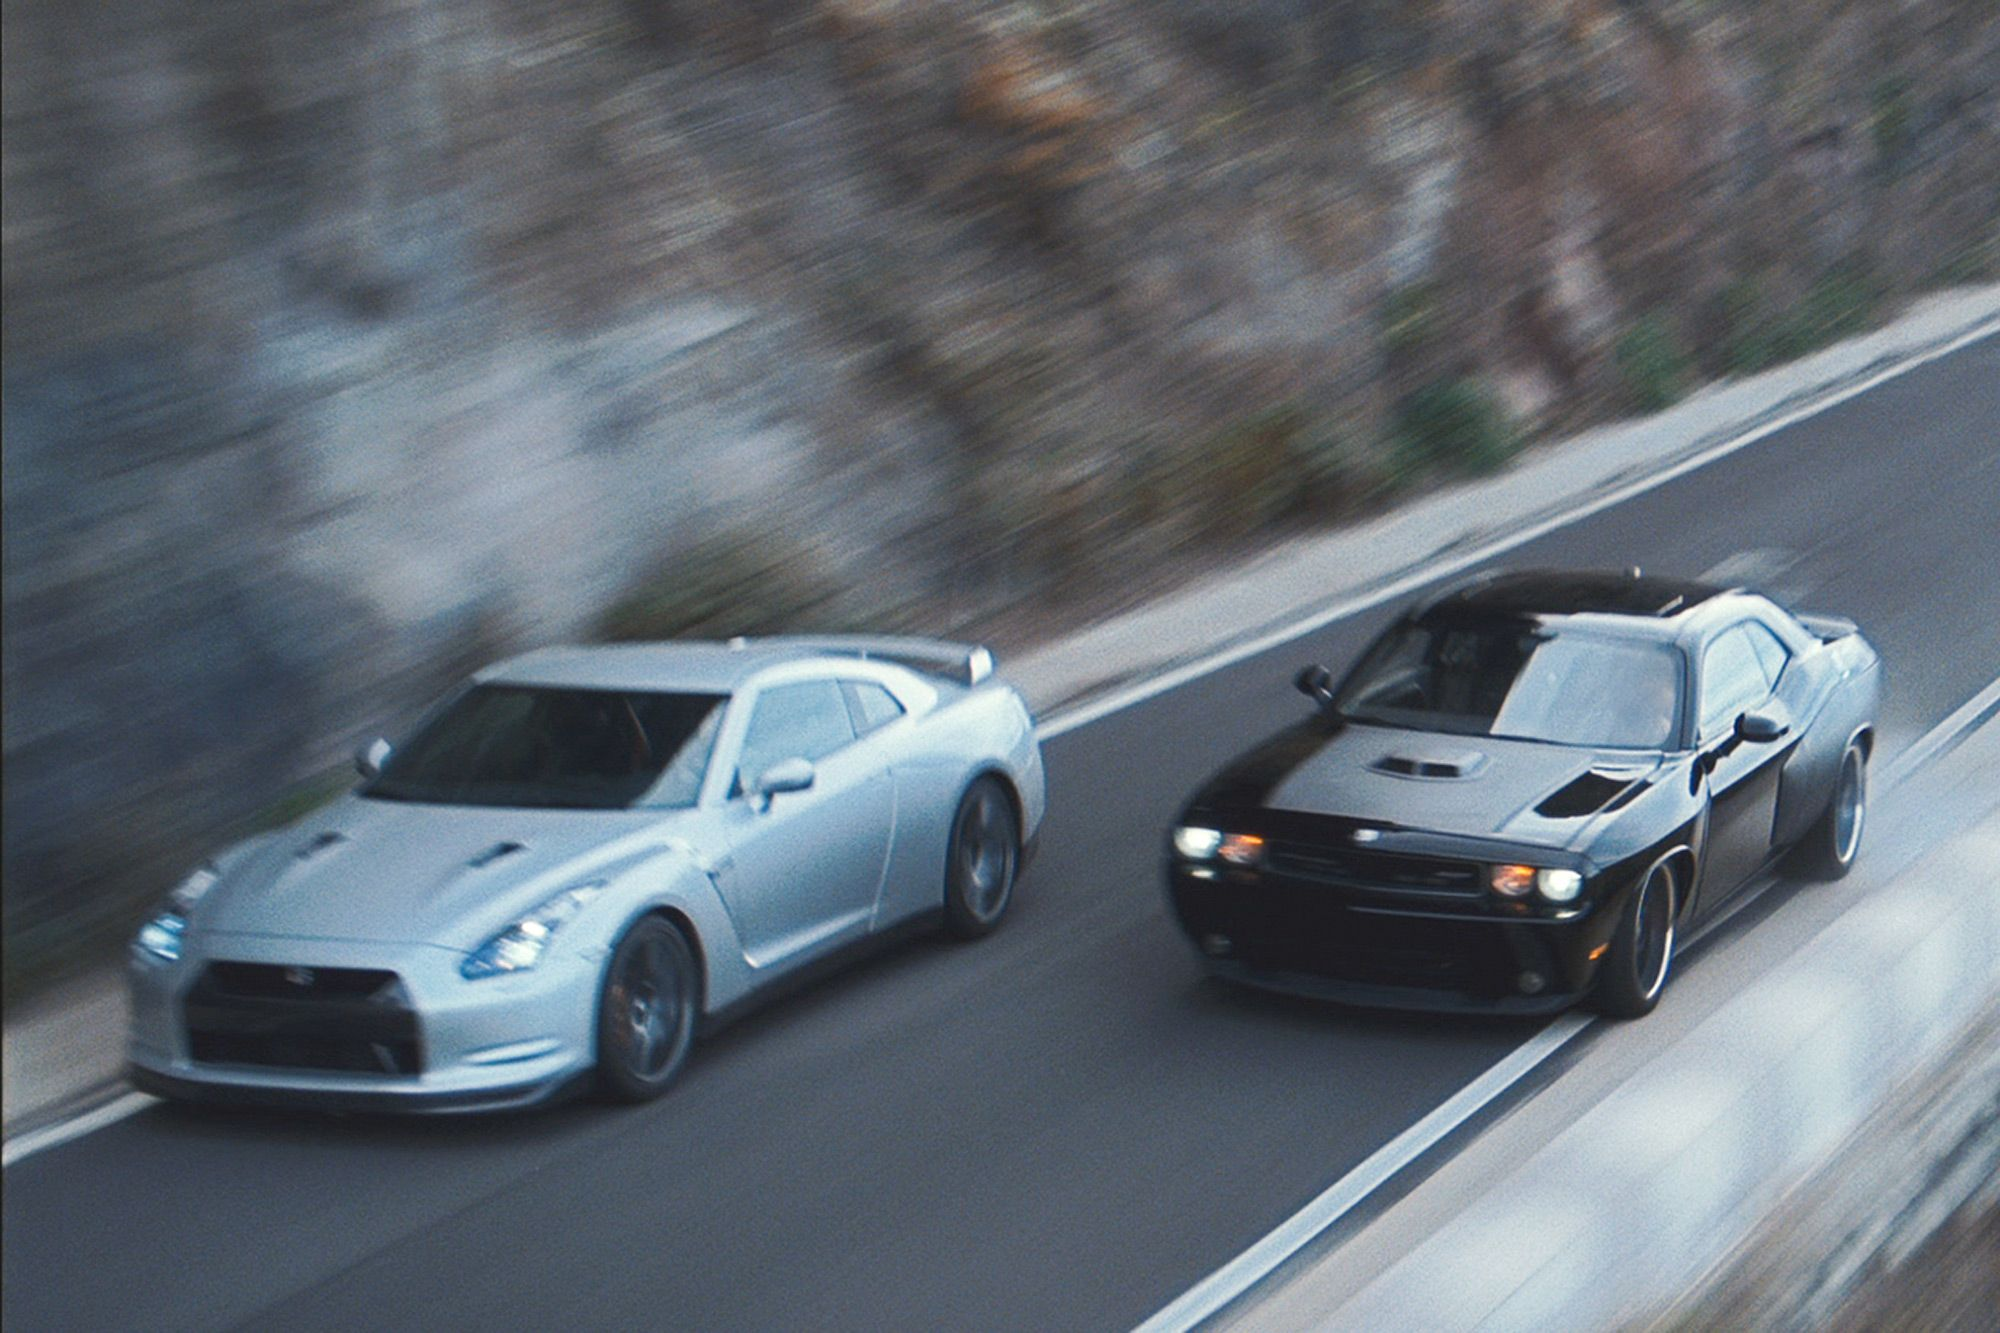 skyline and manji history gt about the used facts r garage features nissan gtr